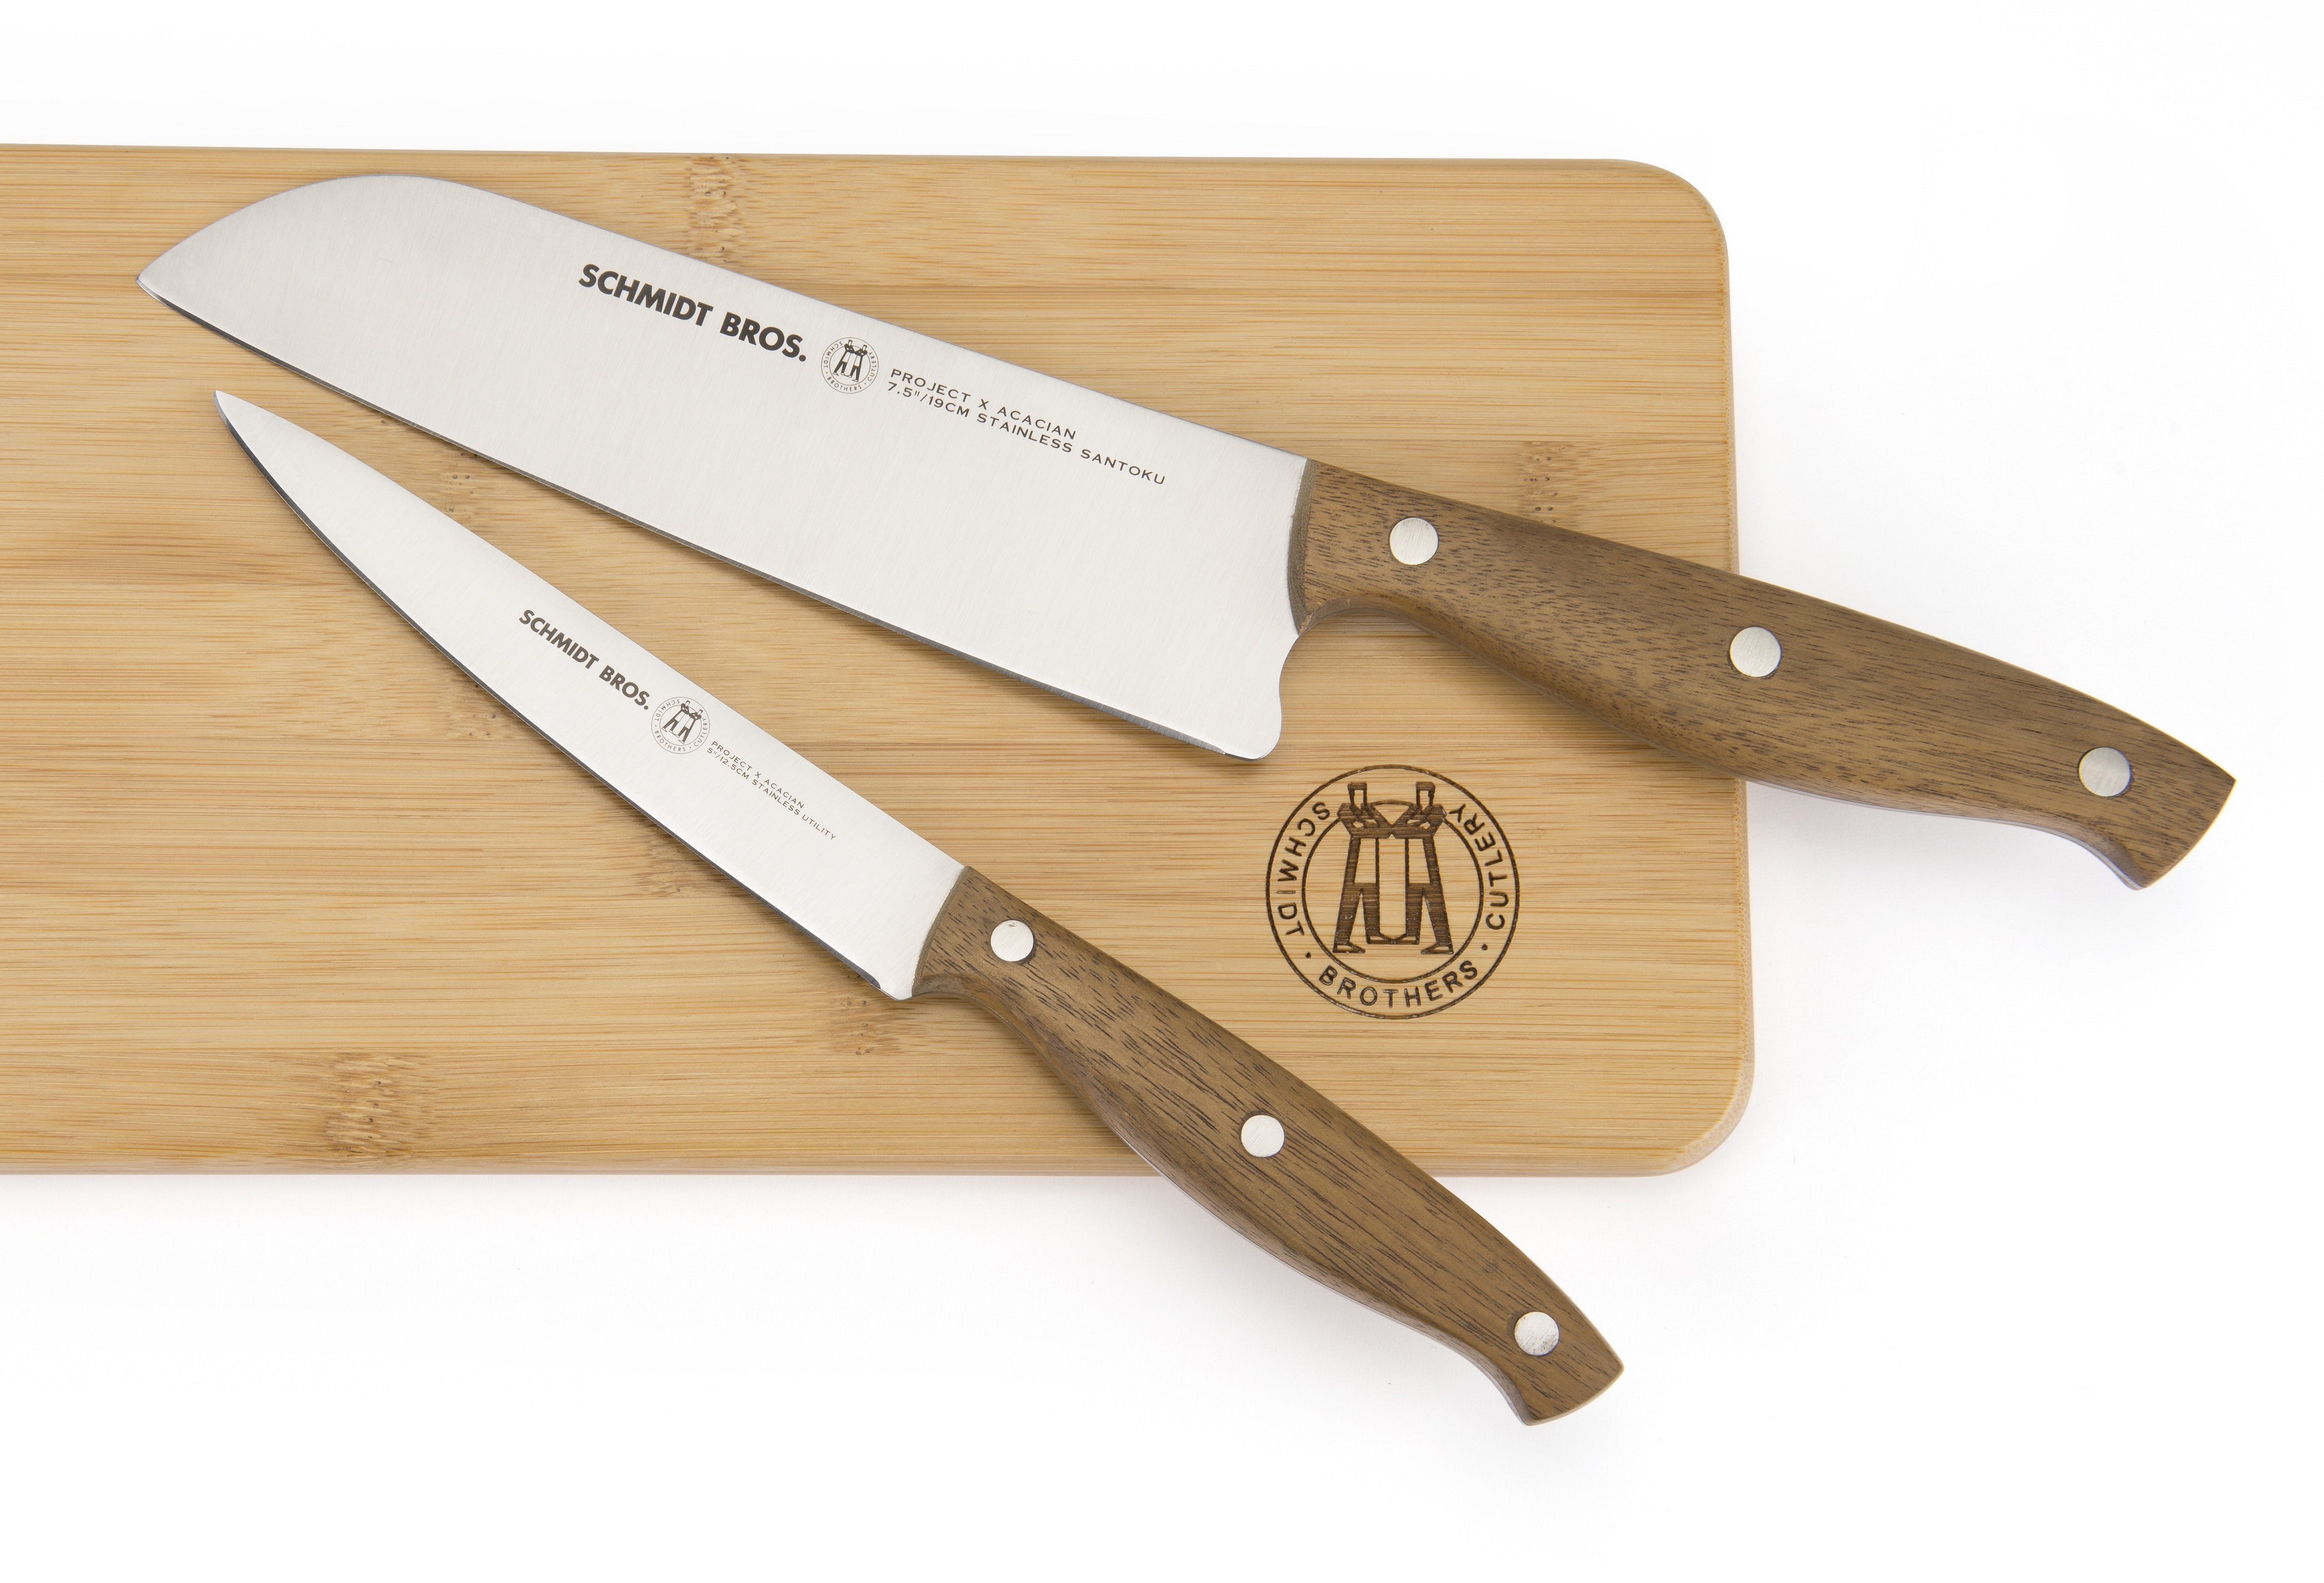 Schmidt Brothers Cutlery Project X 三徳包丁